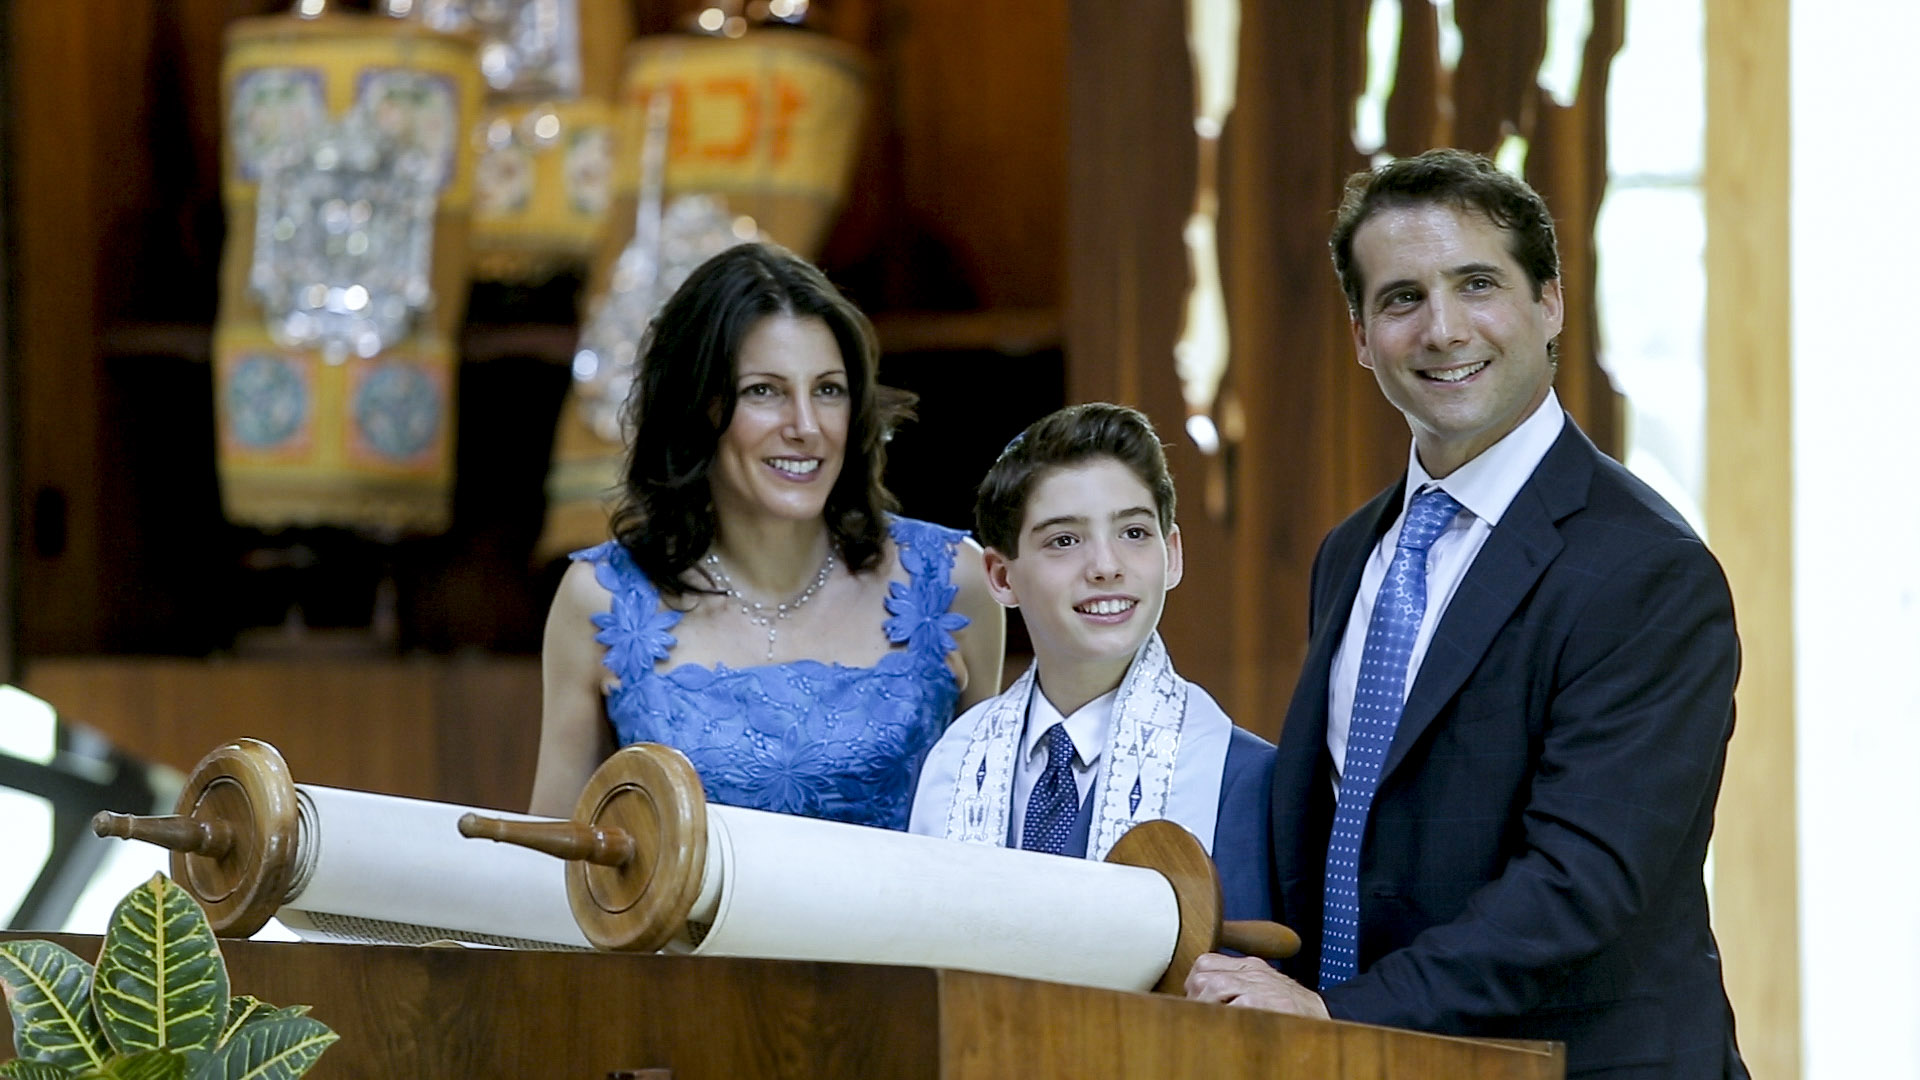 Congregation Emanu-El of Westchester Bar Mitzvah Video of Mac